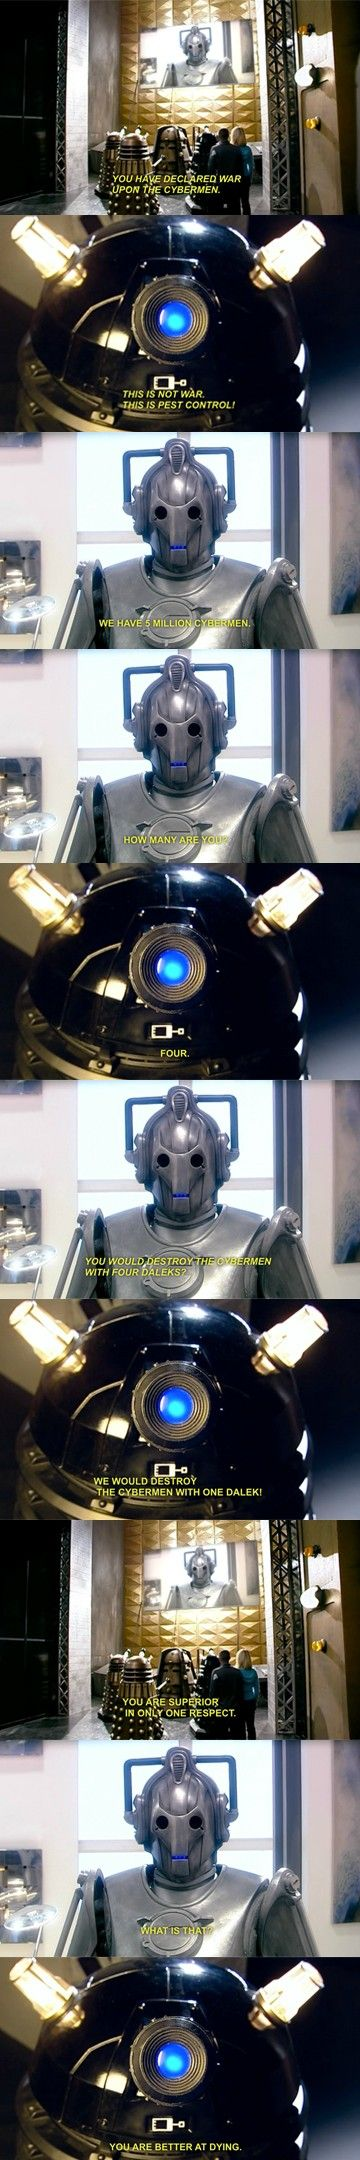 Better at dying..lol. It's funny because neither are supposed to have emotions// the funniest the Daleks/Cybermen have ever been.